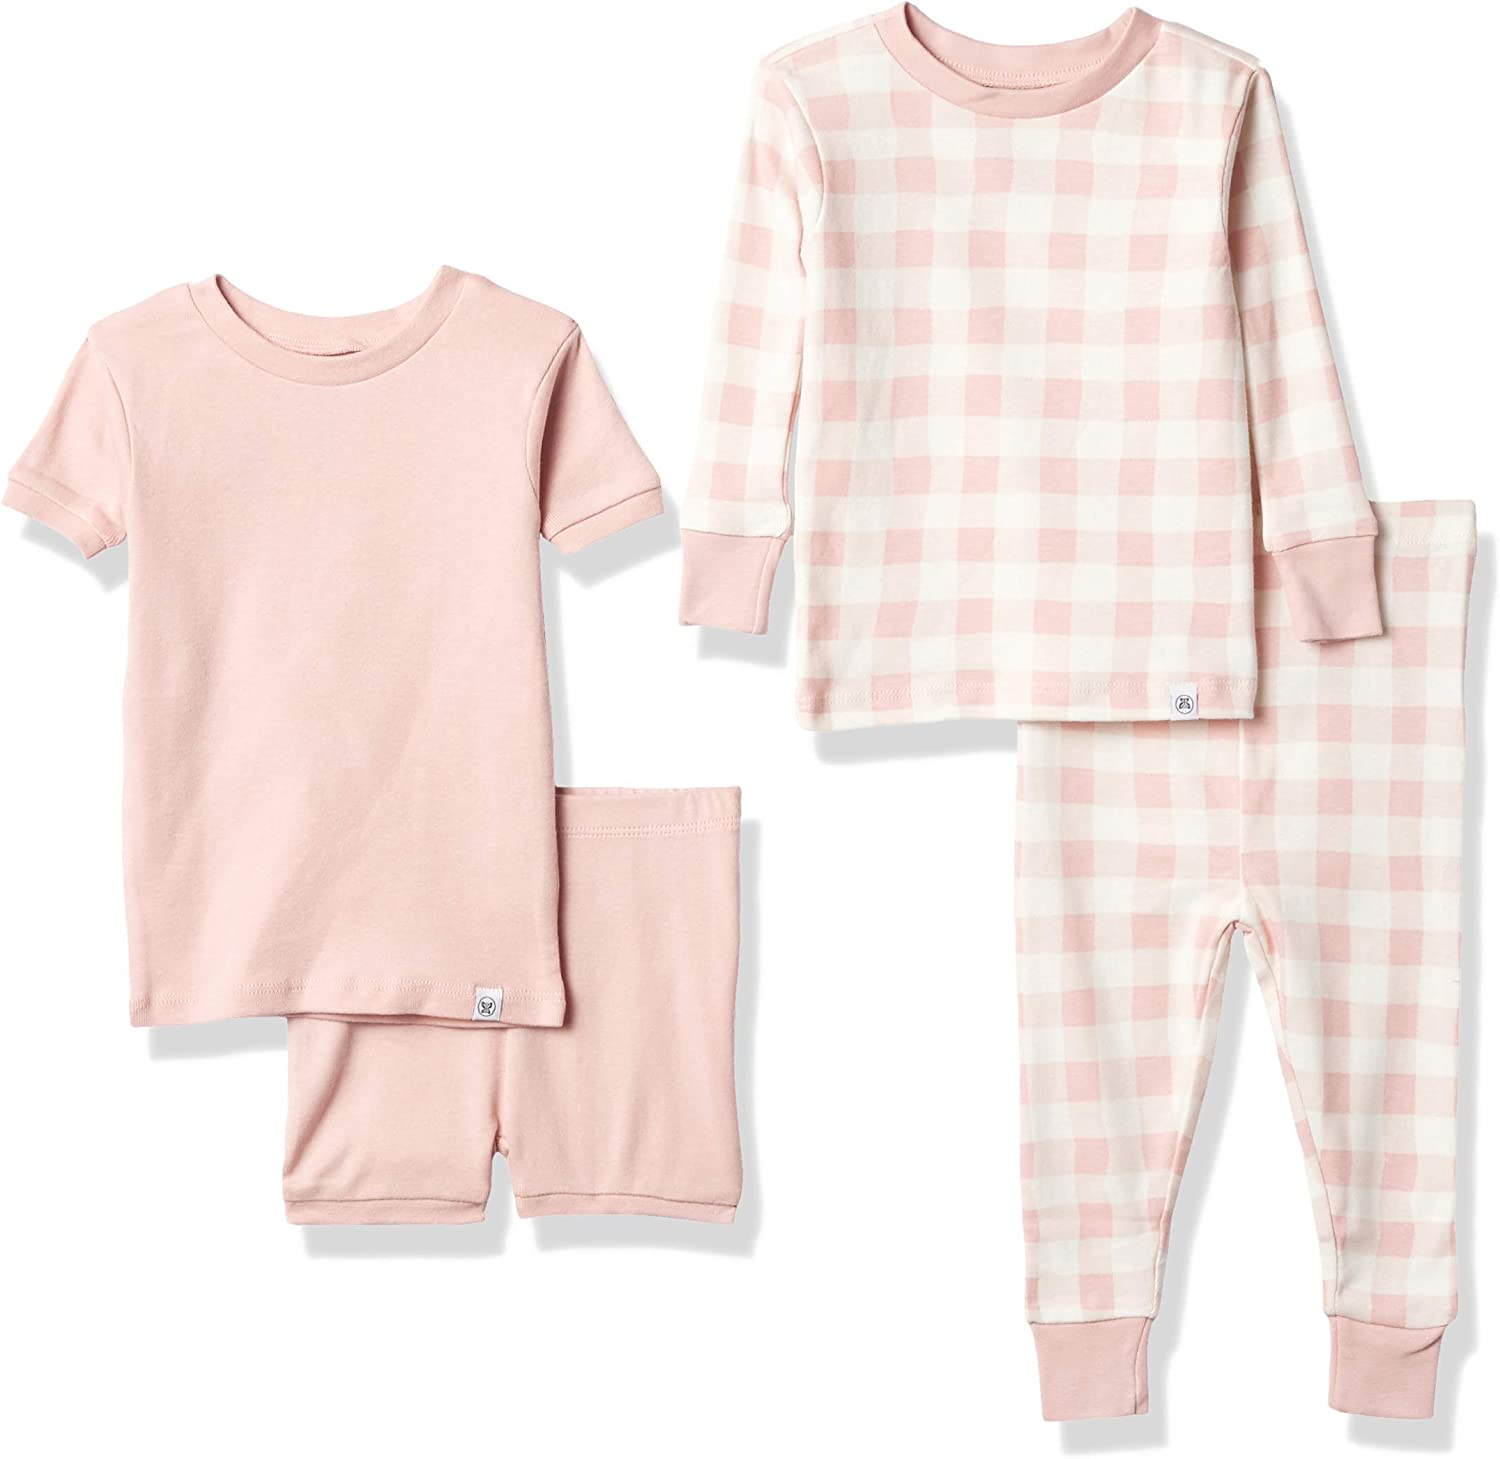 HonestBaby 4-Piece Organic Cotton Short and Long PJ Set, Peach Skin Painted Buffalo Check, 18 Months